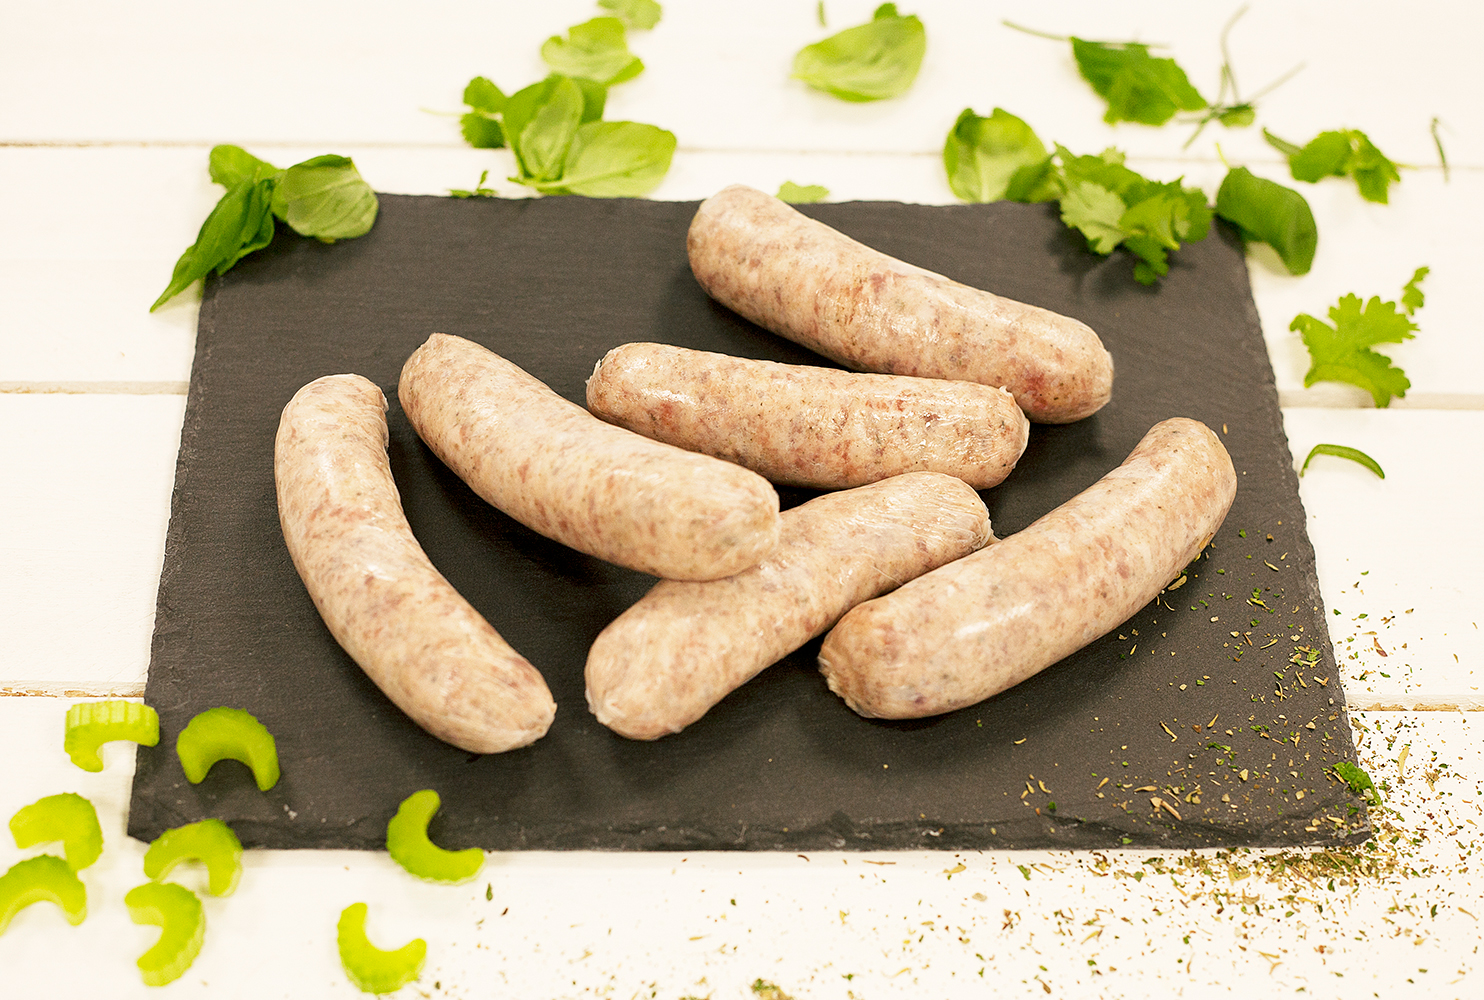 COUNTRY FAYRE PORK & COUNTRY HERB SAUSAGE MIX